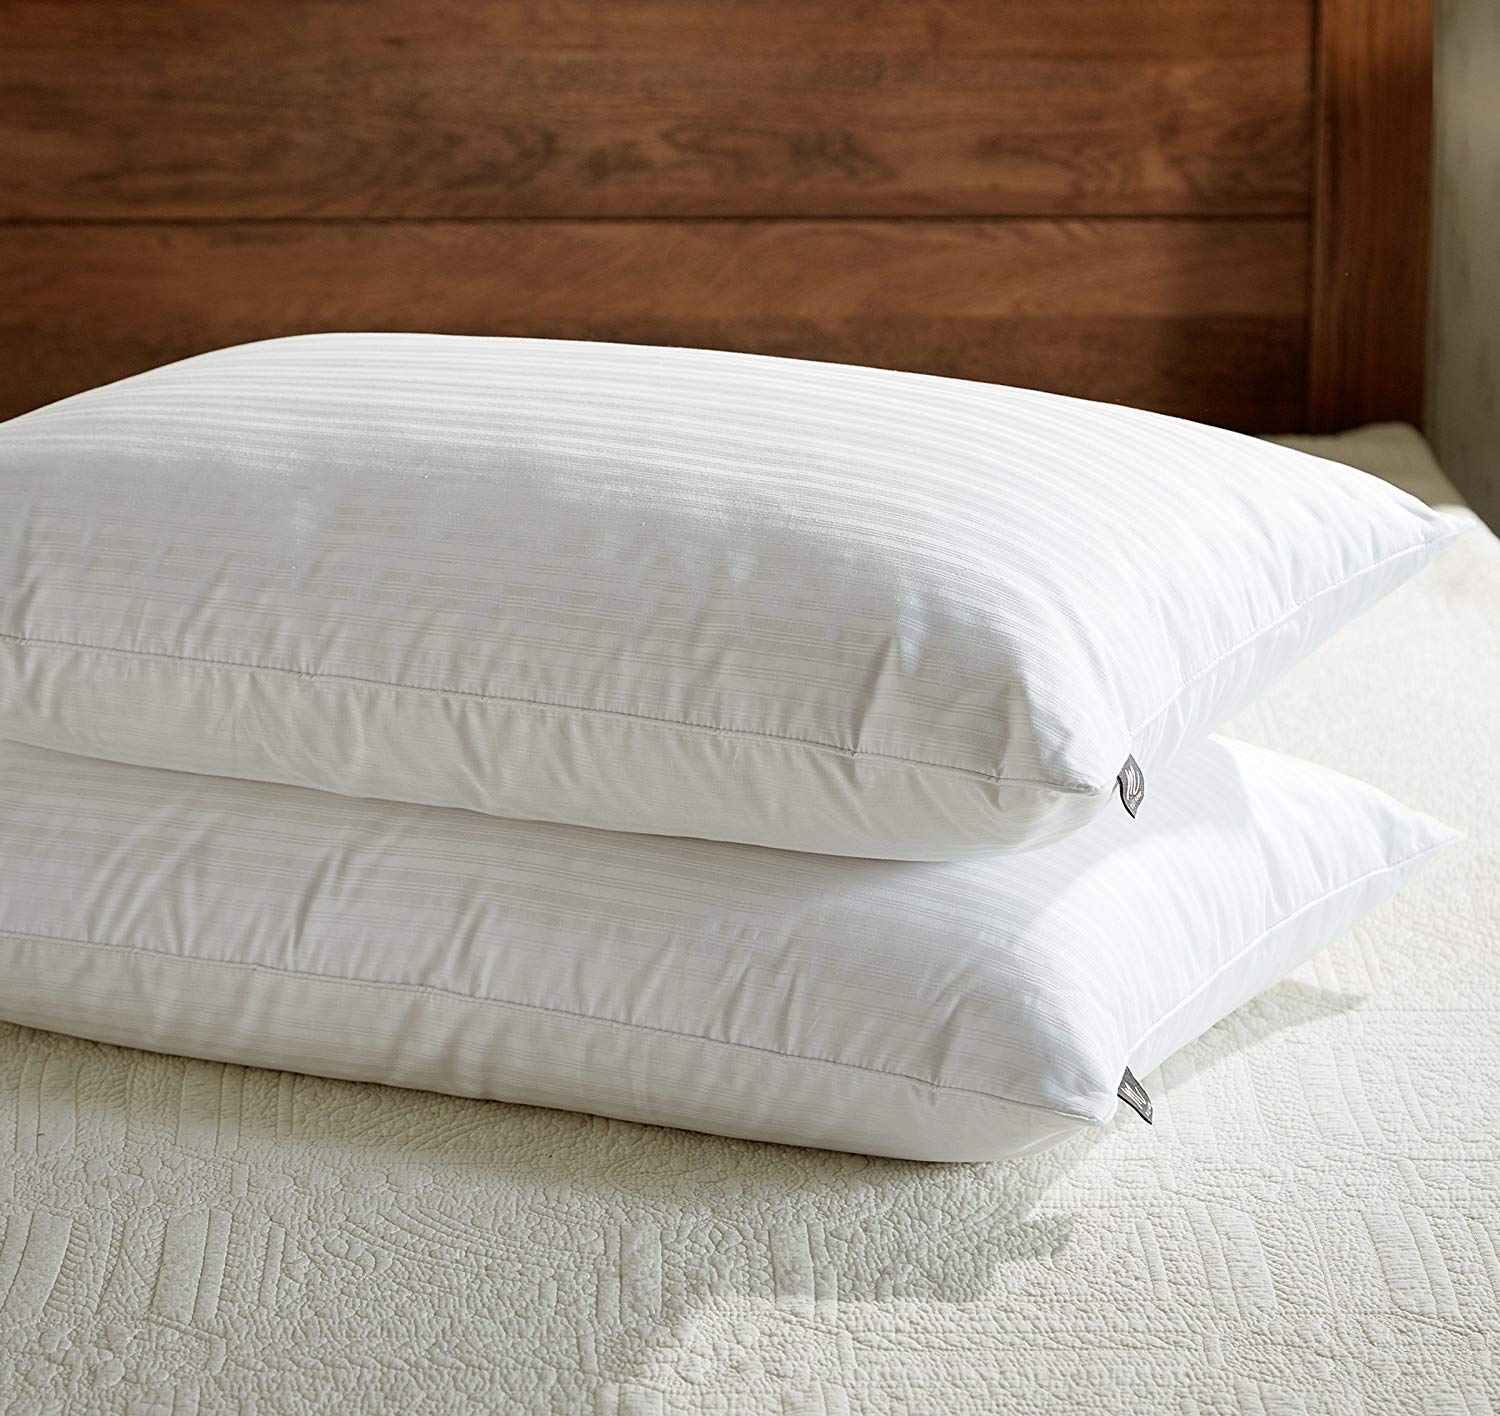 downluxe best feather pillows review by www.dailysleep.org